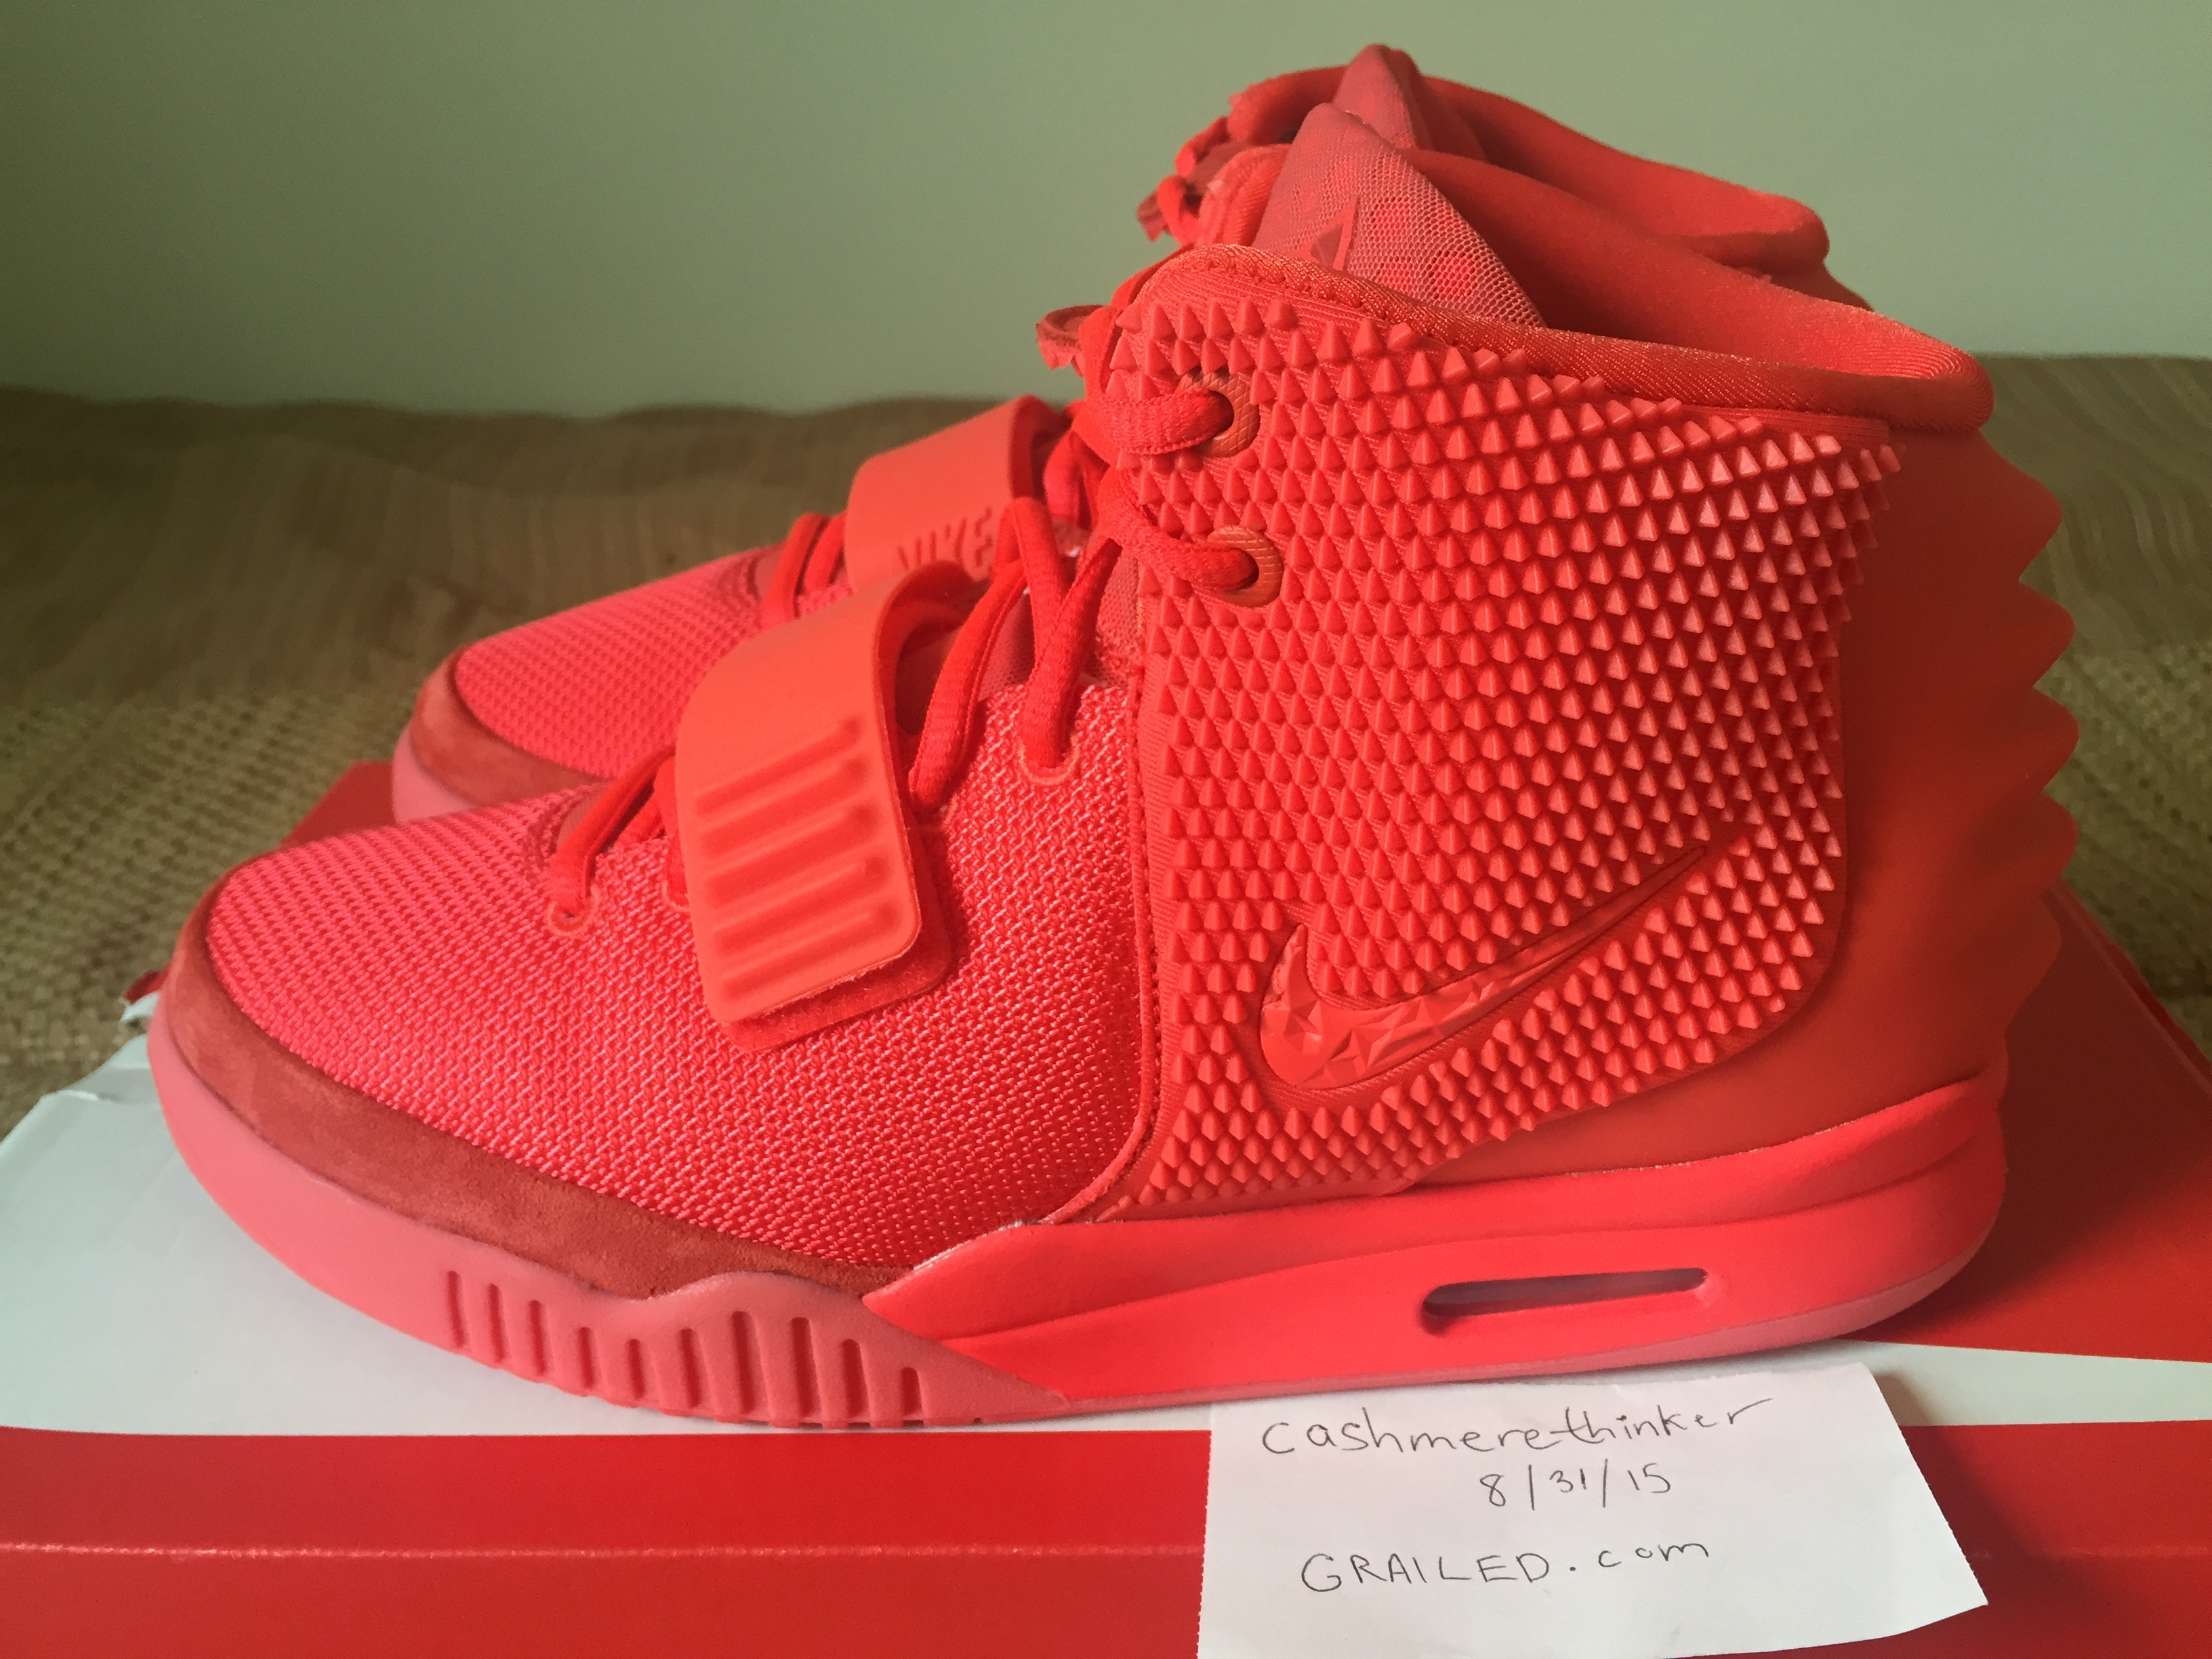 76d0353a34a60d Nike Air Yeezy 2 SP Red October Size 9 - for Sale - Grailed